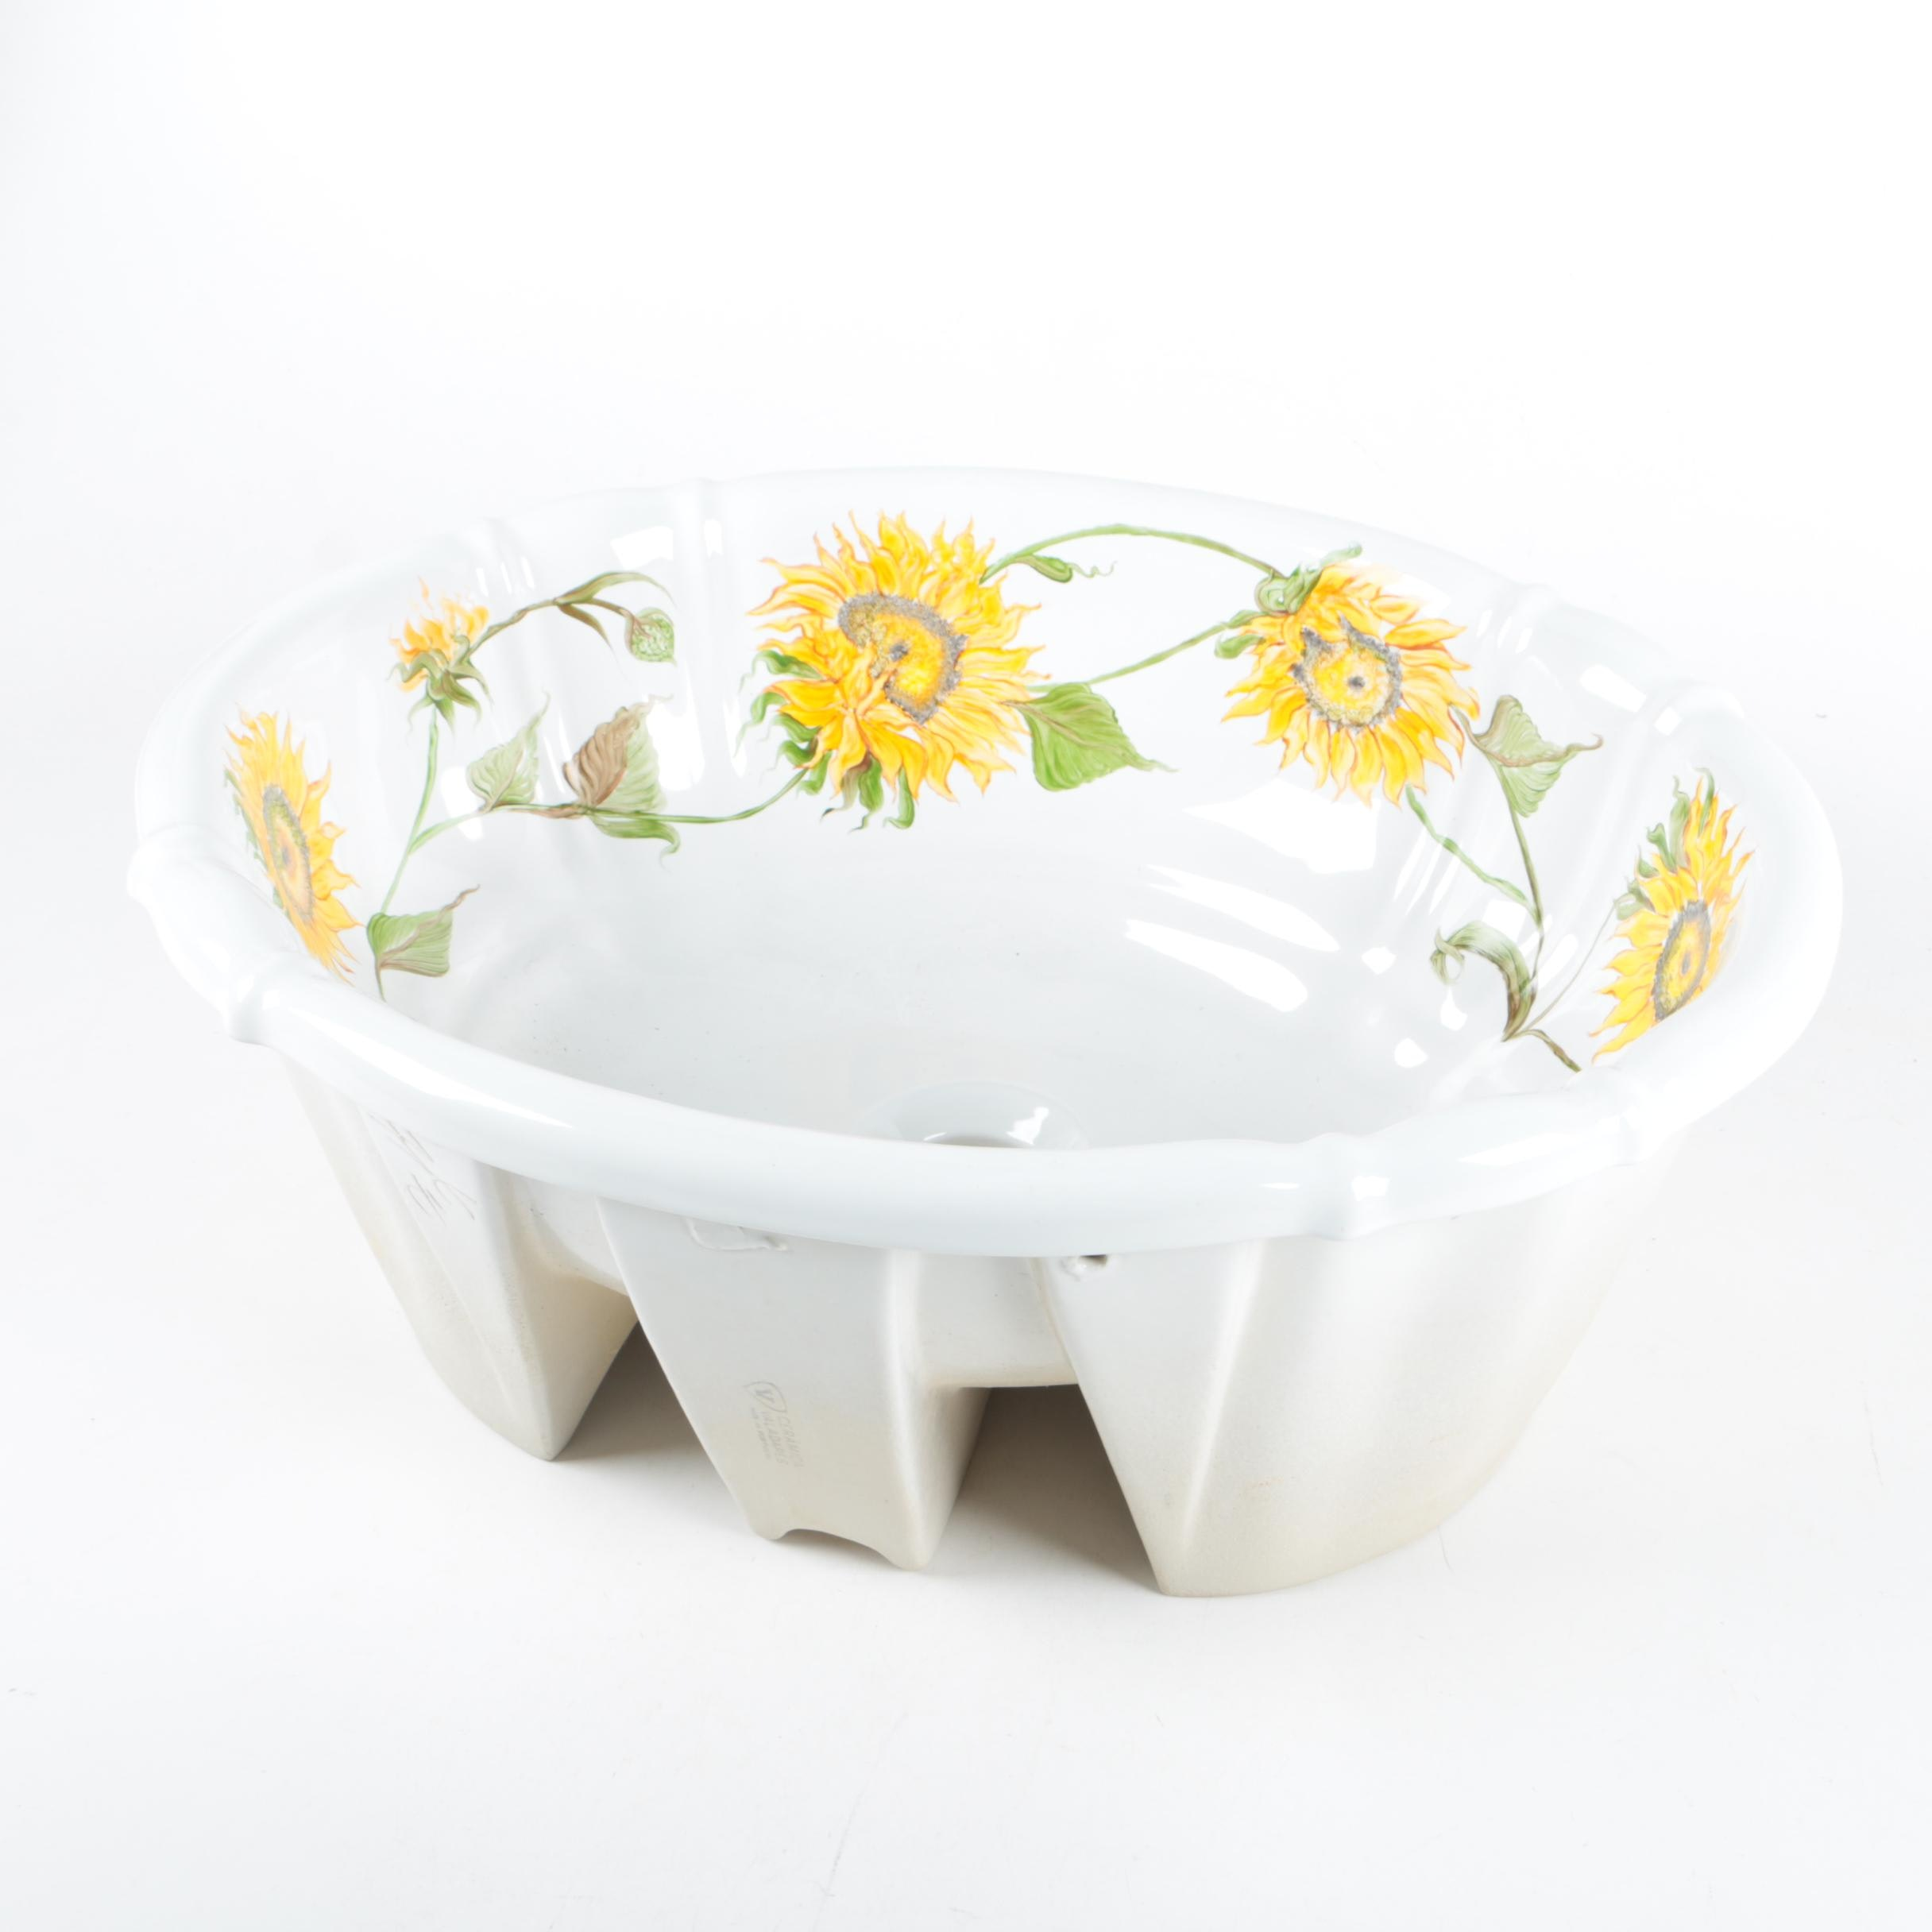 Porcelain Sink Basin with Sunflowers by Ceramica Valadares